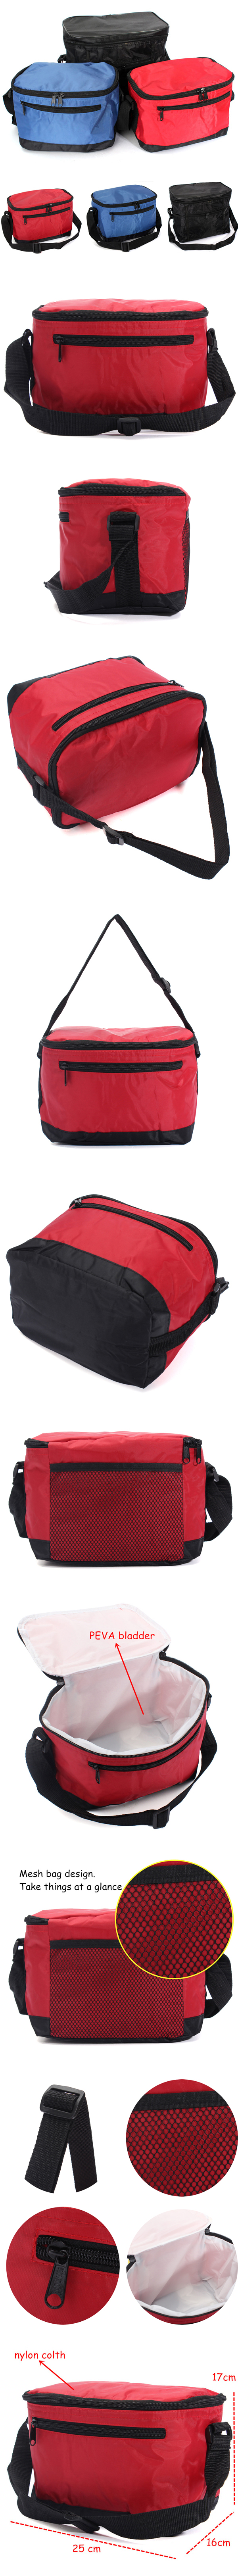 Thermal Cooler Waterproof Lunch Bag Portable Insulated Picnic Tote Multifunction Picnic Bag